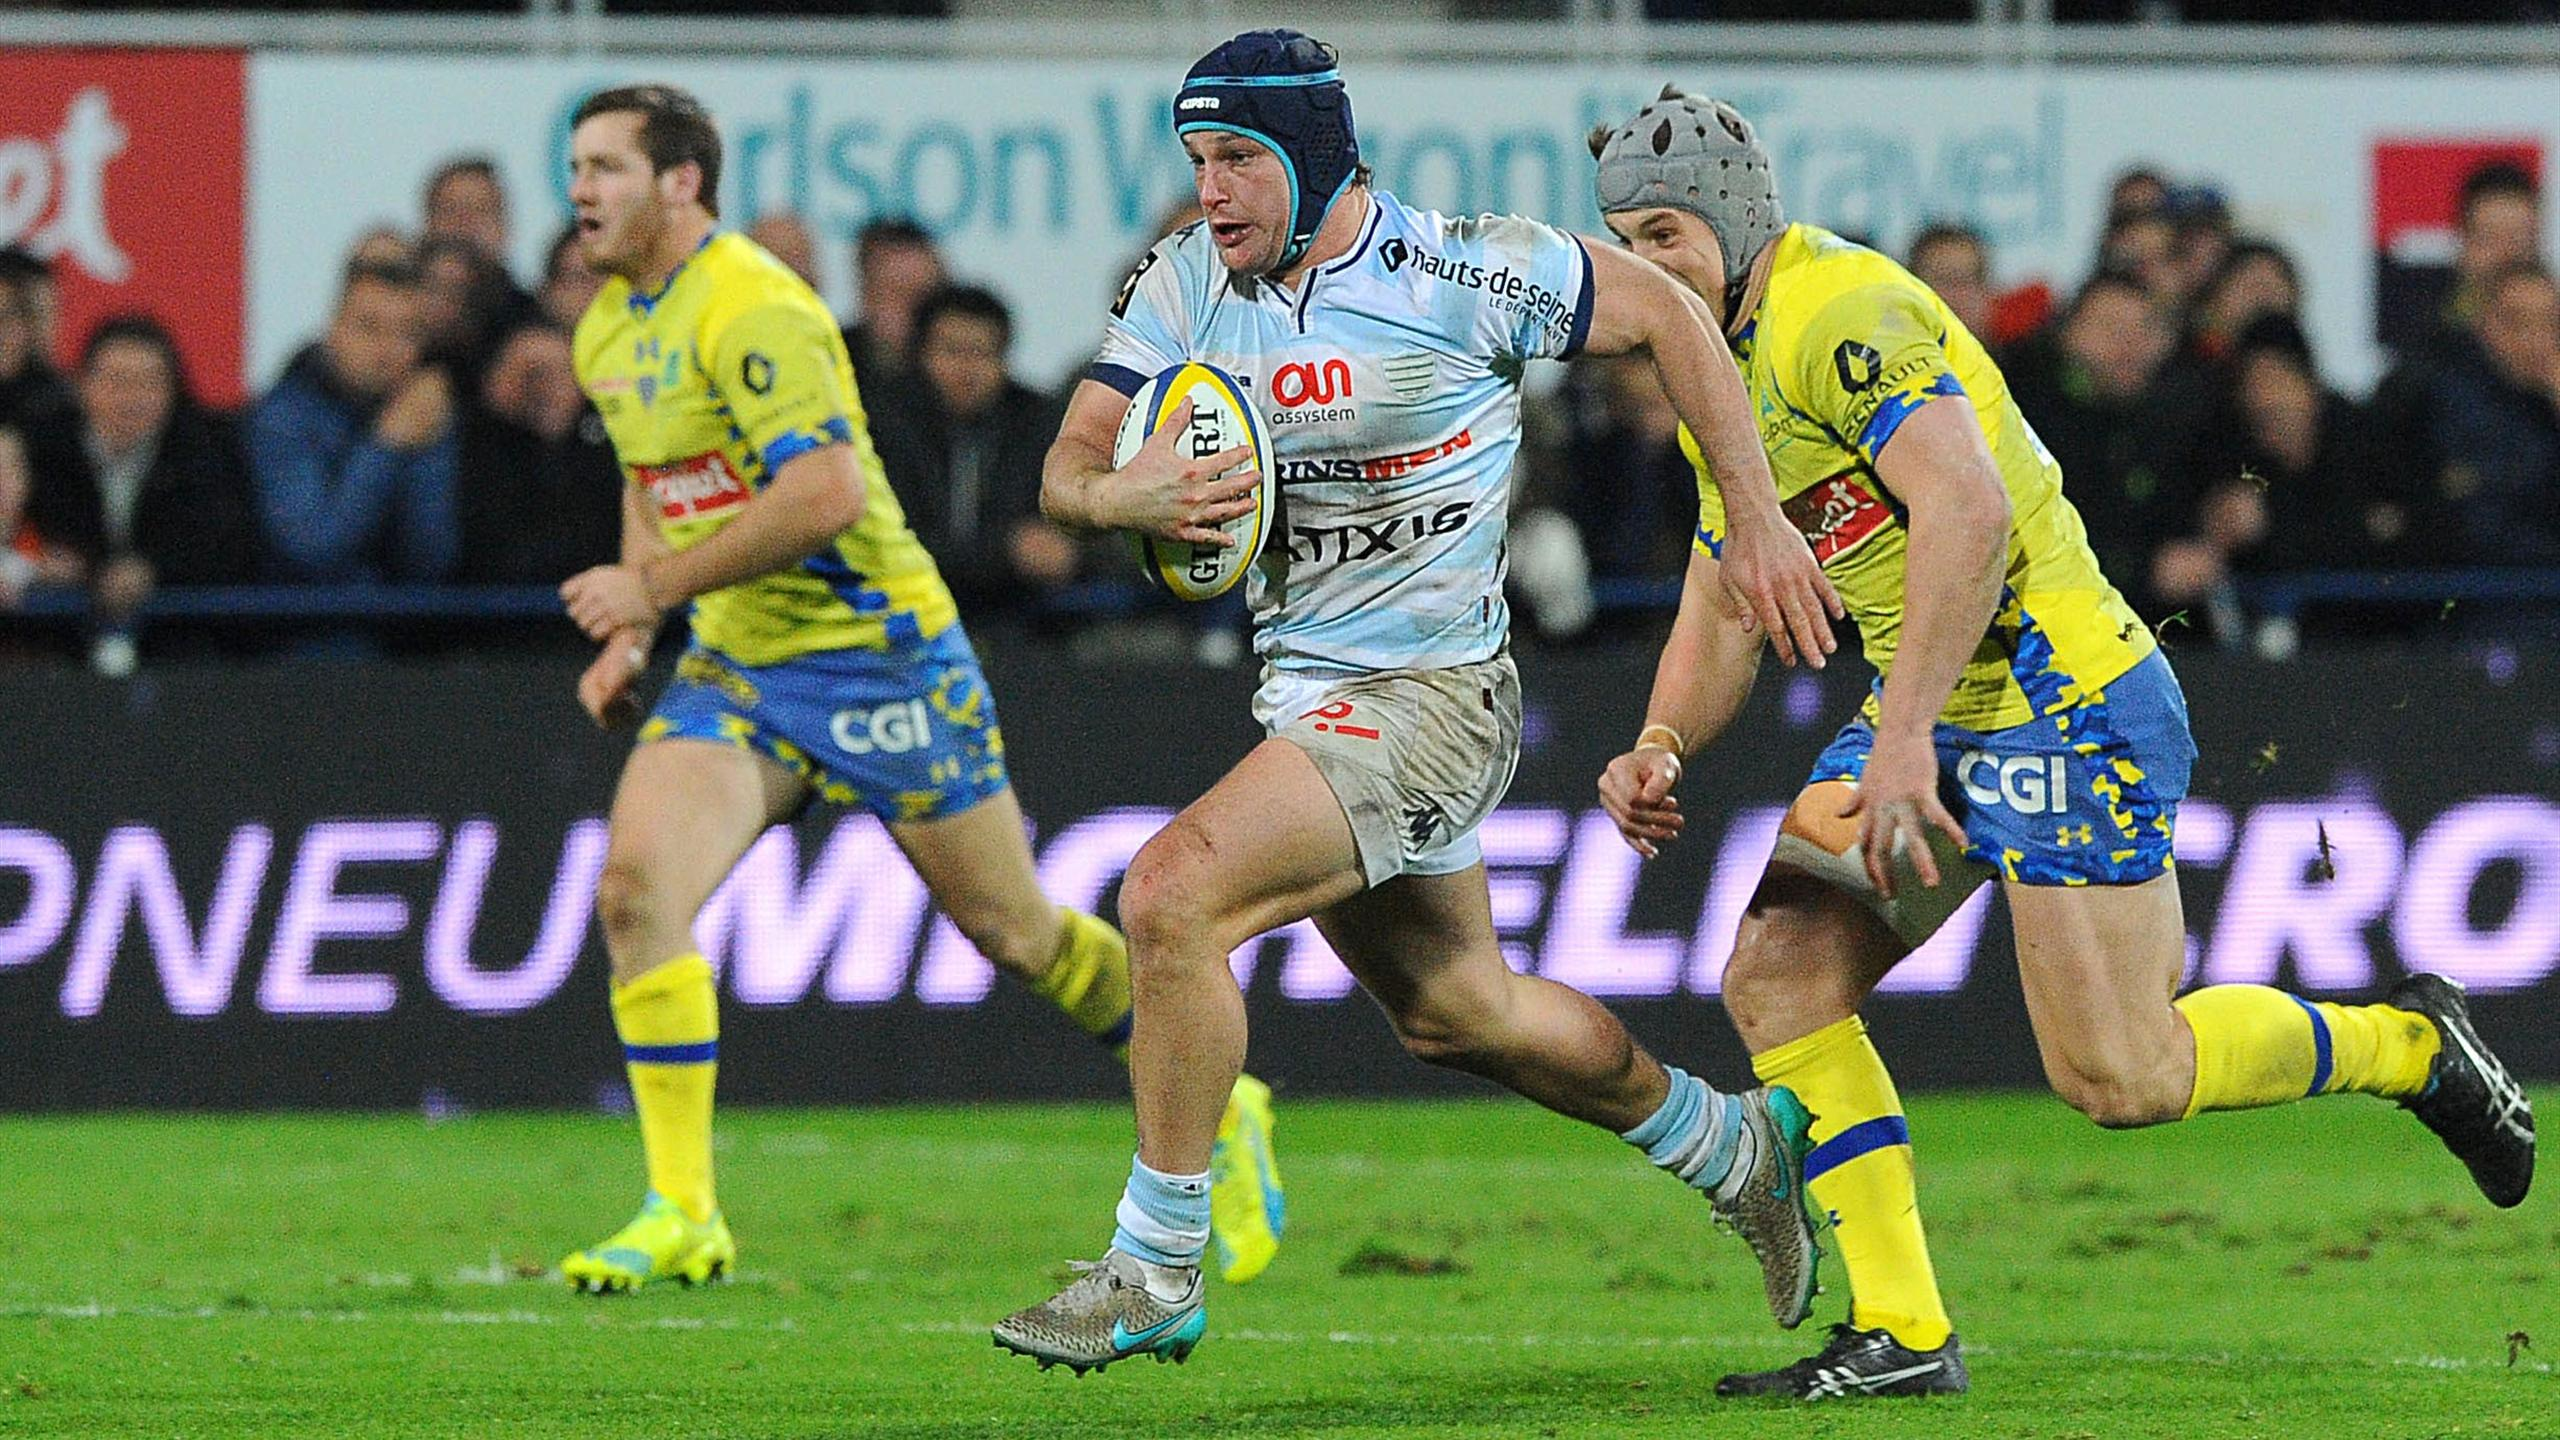 Henry Chavancy (Racing 92) face à Clermont - 27 décembre 2015